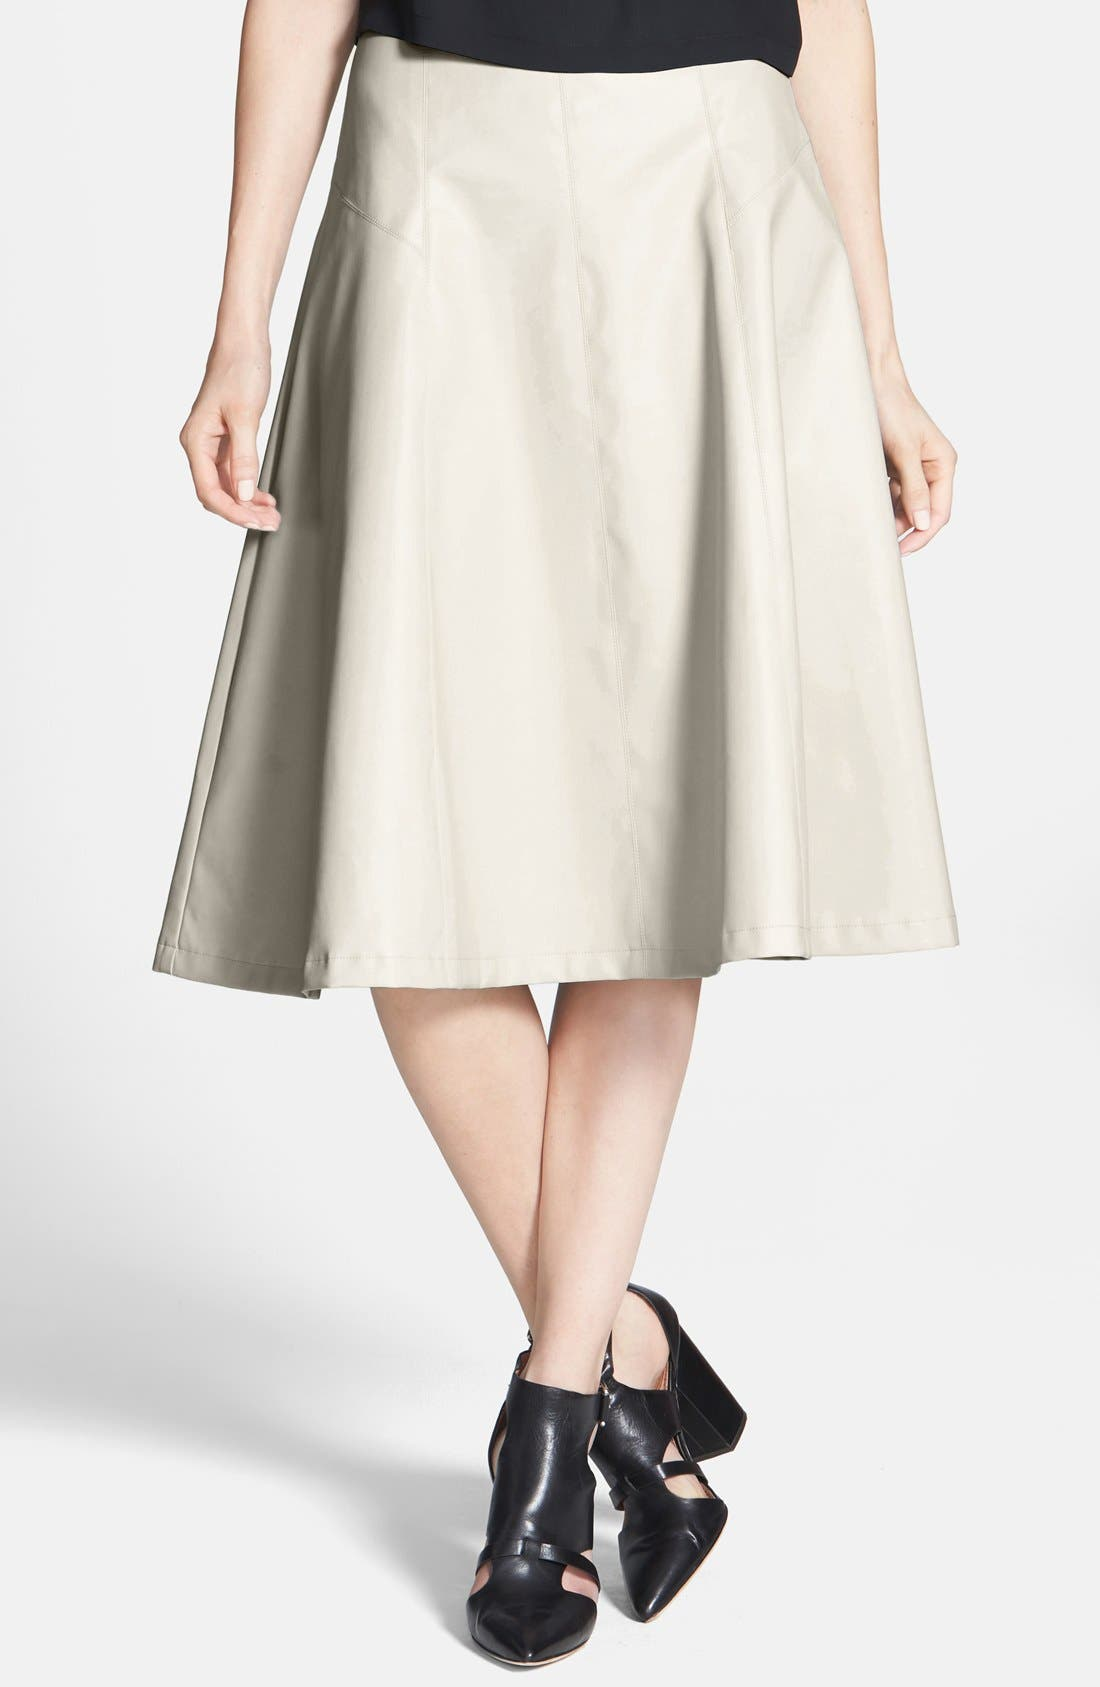 ASTR Faux Leather A-Line Midi Skirt, Main, color, 032